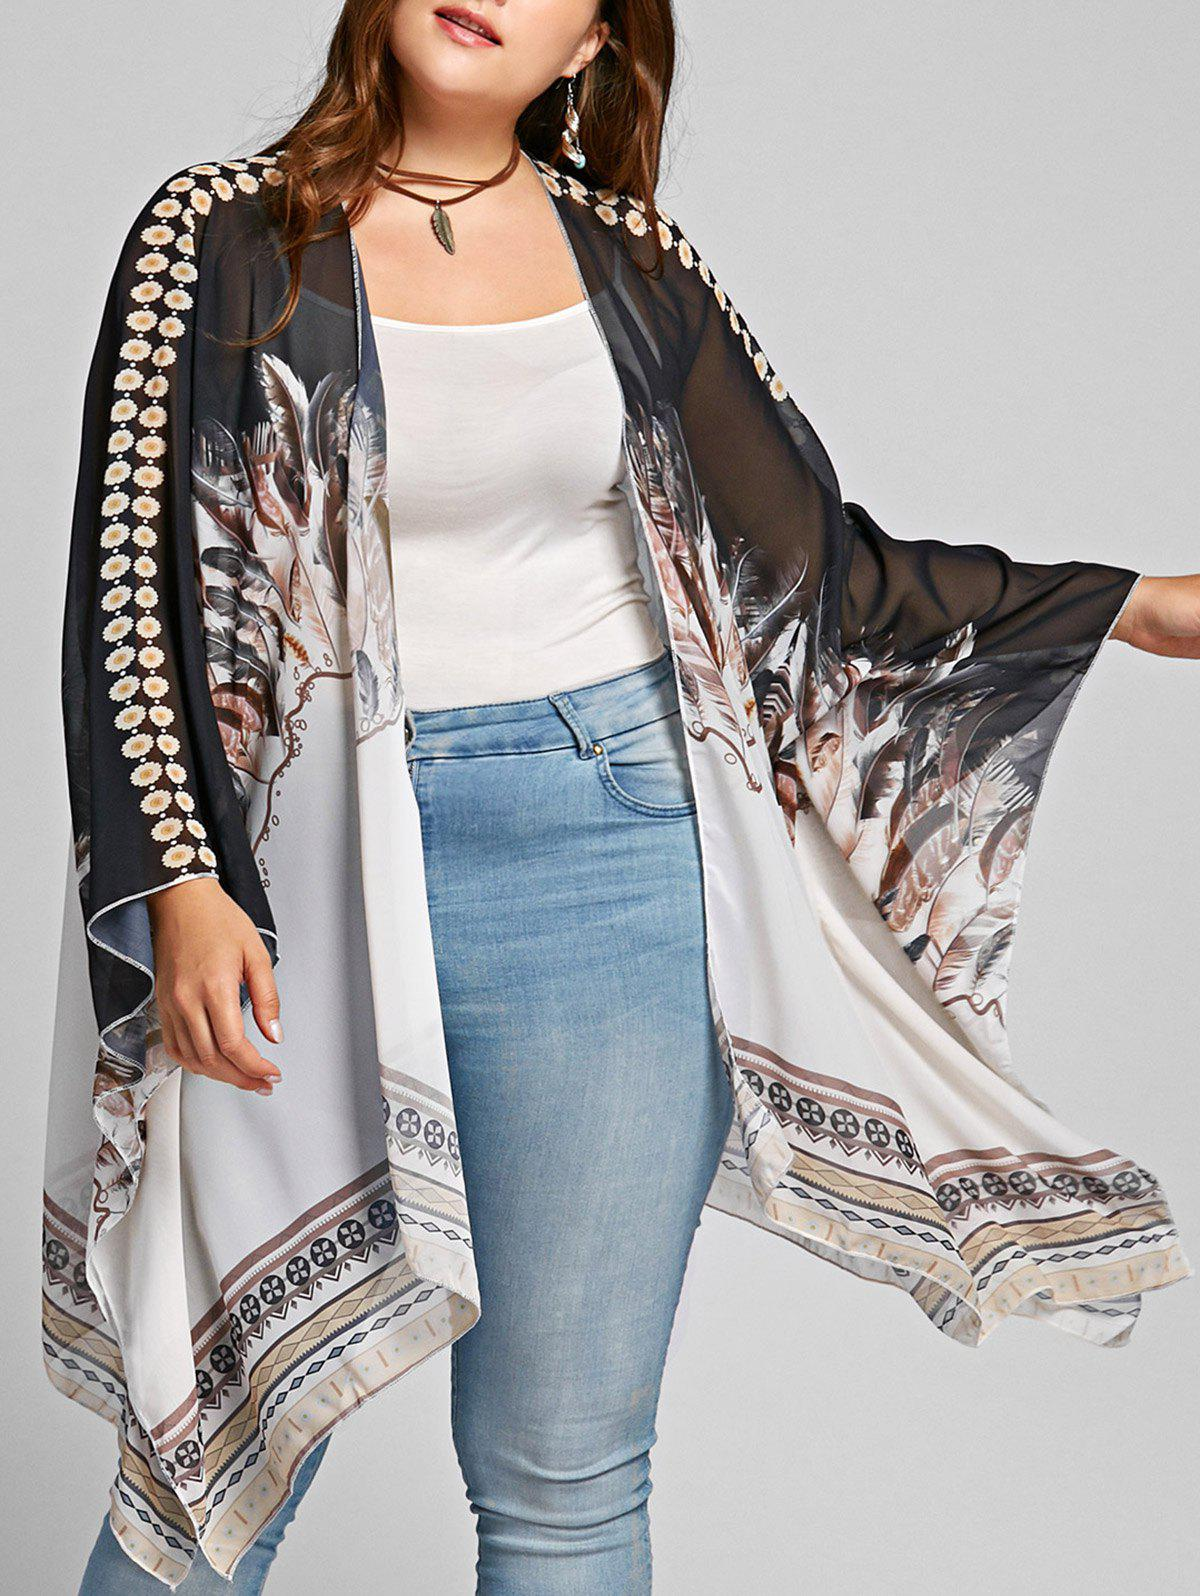 Feather Print Open Front Plus Size Poncho CoatWOMEN<br><br>Size: ONE SIZE; Color: COLORMIX; Clothes Type: Others; Material: Polyester; Type: Asymmetric Length; Shirt Length: Long; Sleeve Length: Full; Sleeve Type: Batwing Sleeve; Collar: Collarless; Pattern Type: Feather; Style: Fashion; Season: Fall,Spring; With Belt: No; Weight: 0.2300kg; Package Contents: 1 x Coat;